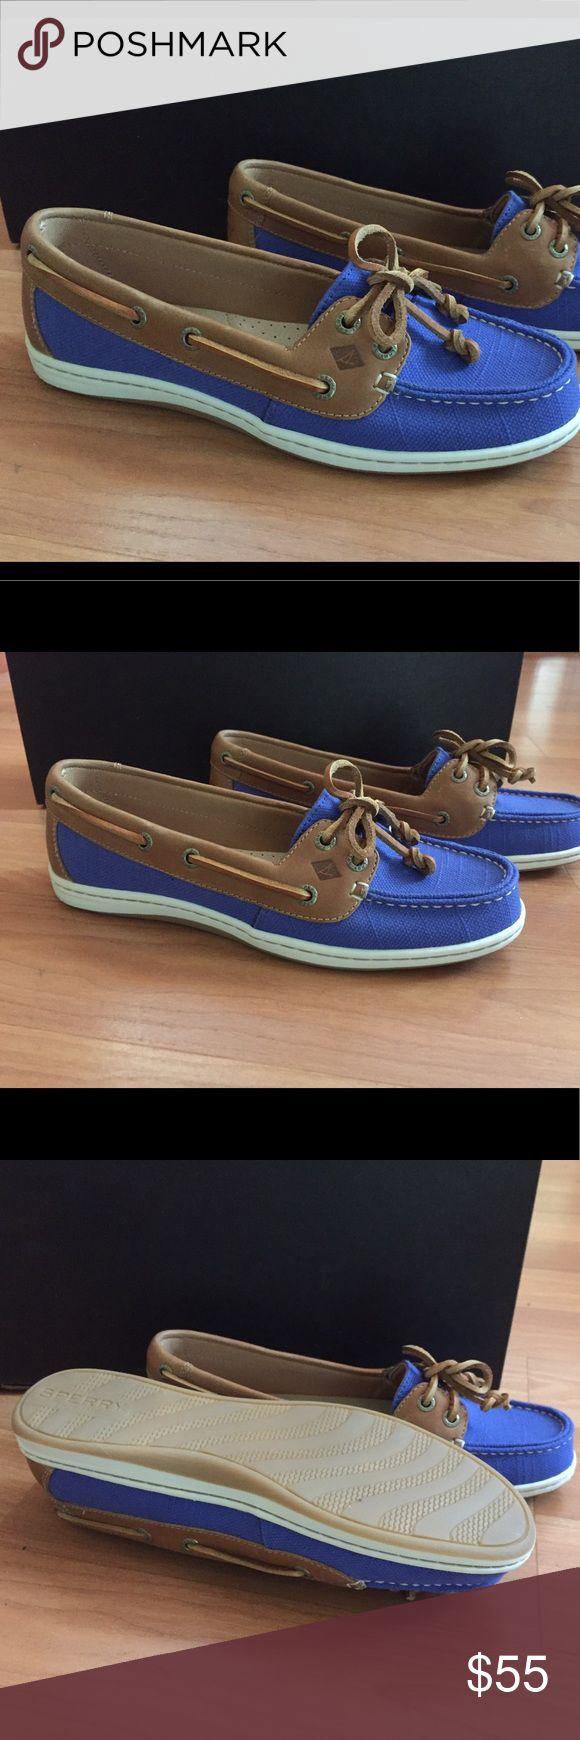 Sperry Top Sider Firefish Baltic Blue Boat Shoe Excellent condition Sperry Top Sider Firefish Baltic Blue Boat Shoes.  Women's size 8. Worn once. Sperry Top-Sider Shoes Flats & Loafers